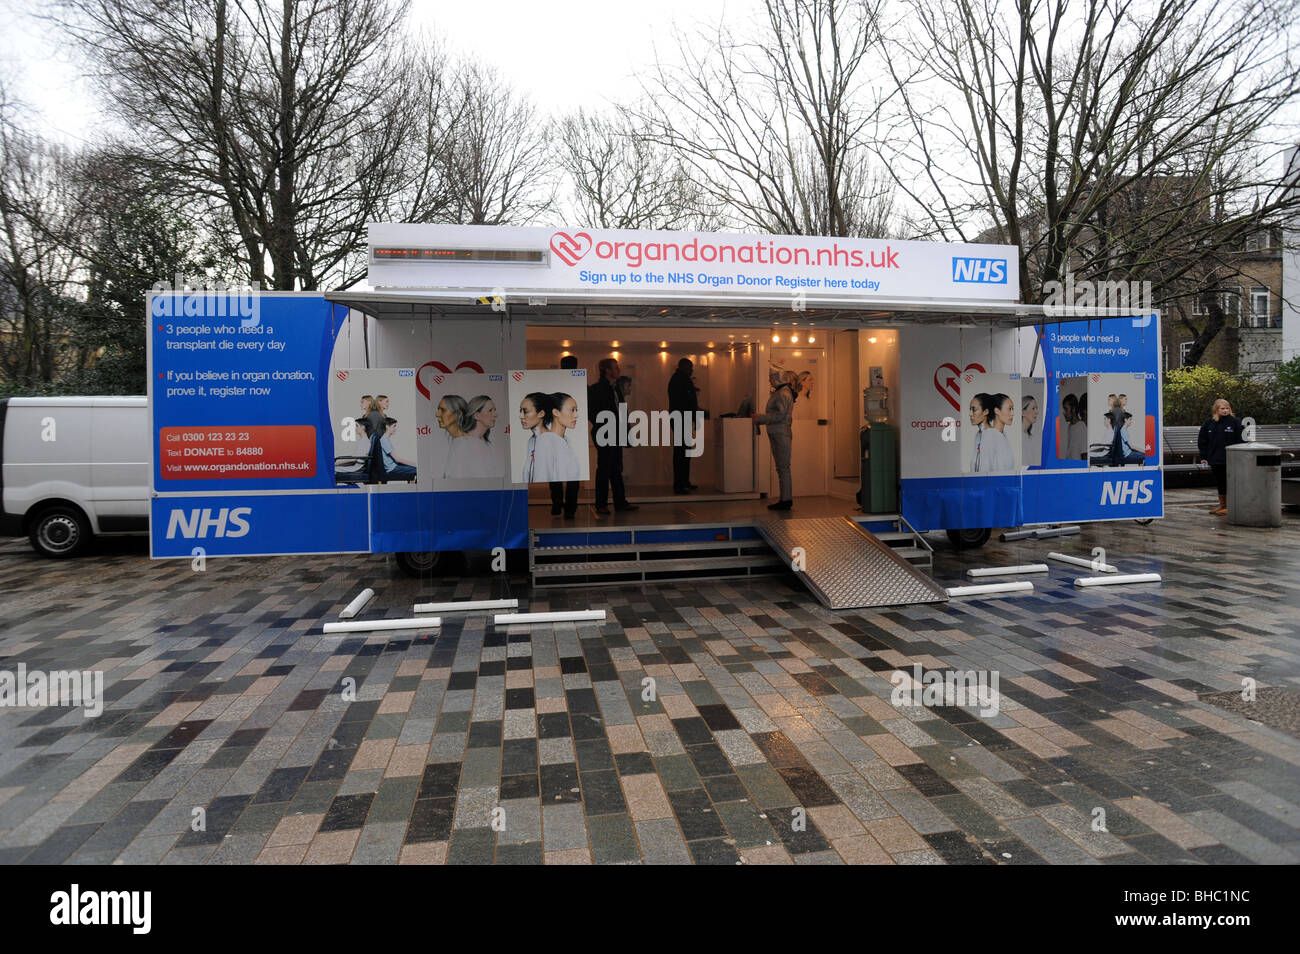 Organ donation roadshow in the centre of brighton to encourage people to sign up to donate organs - Stock Image